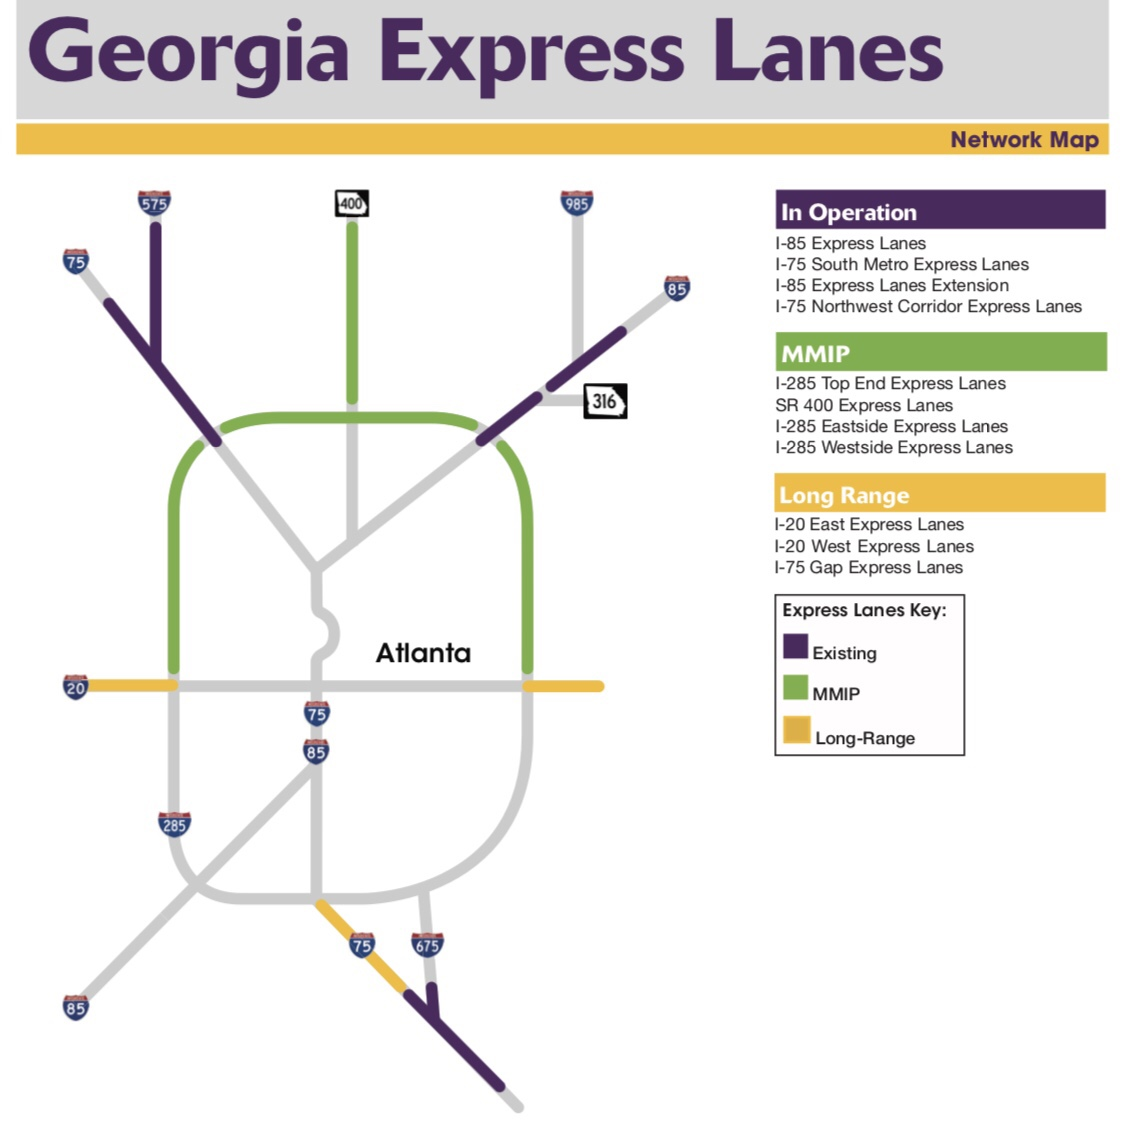 Map of the planned Georgia Express Lanes network